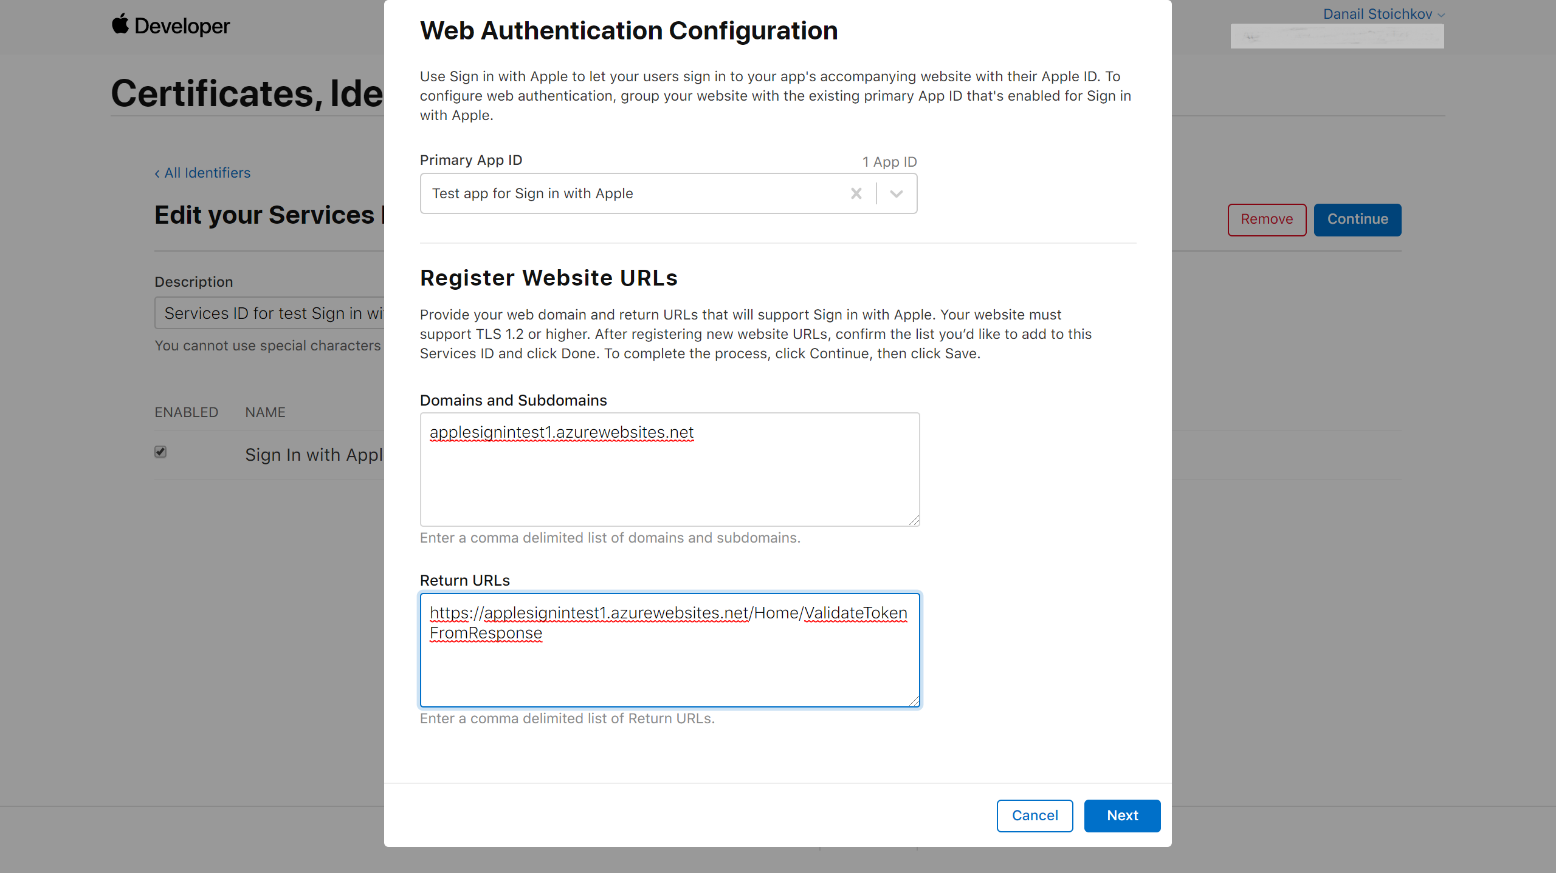 sign in with apple web authentication configuration